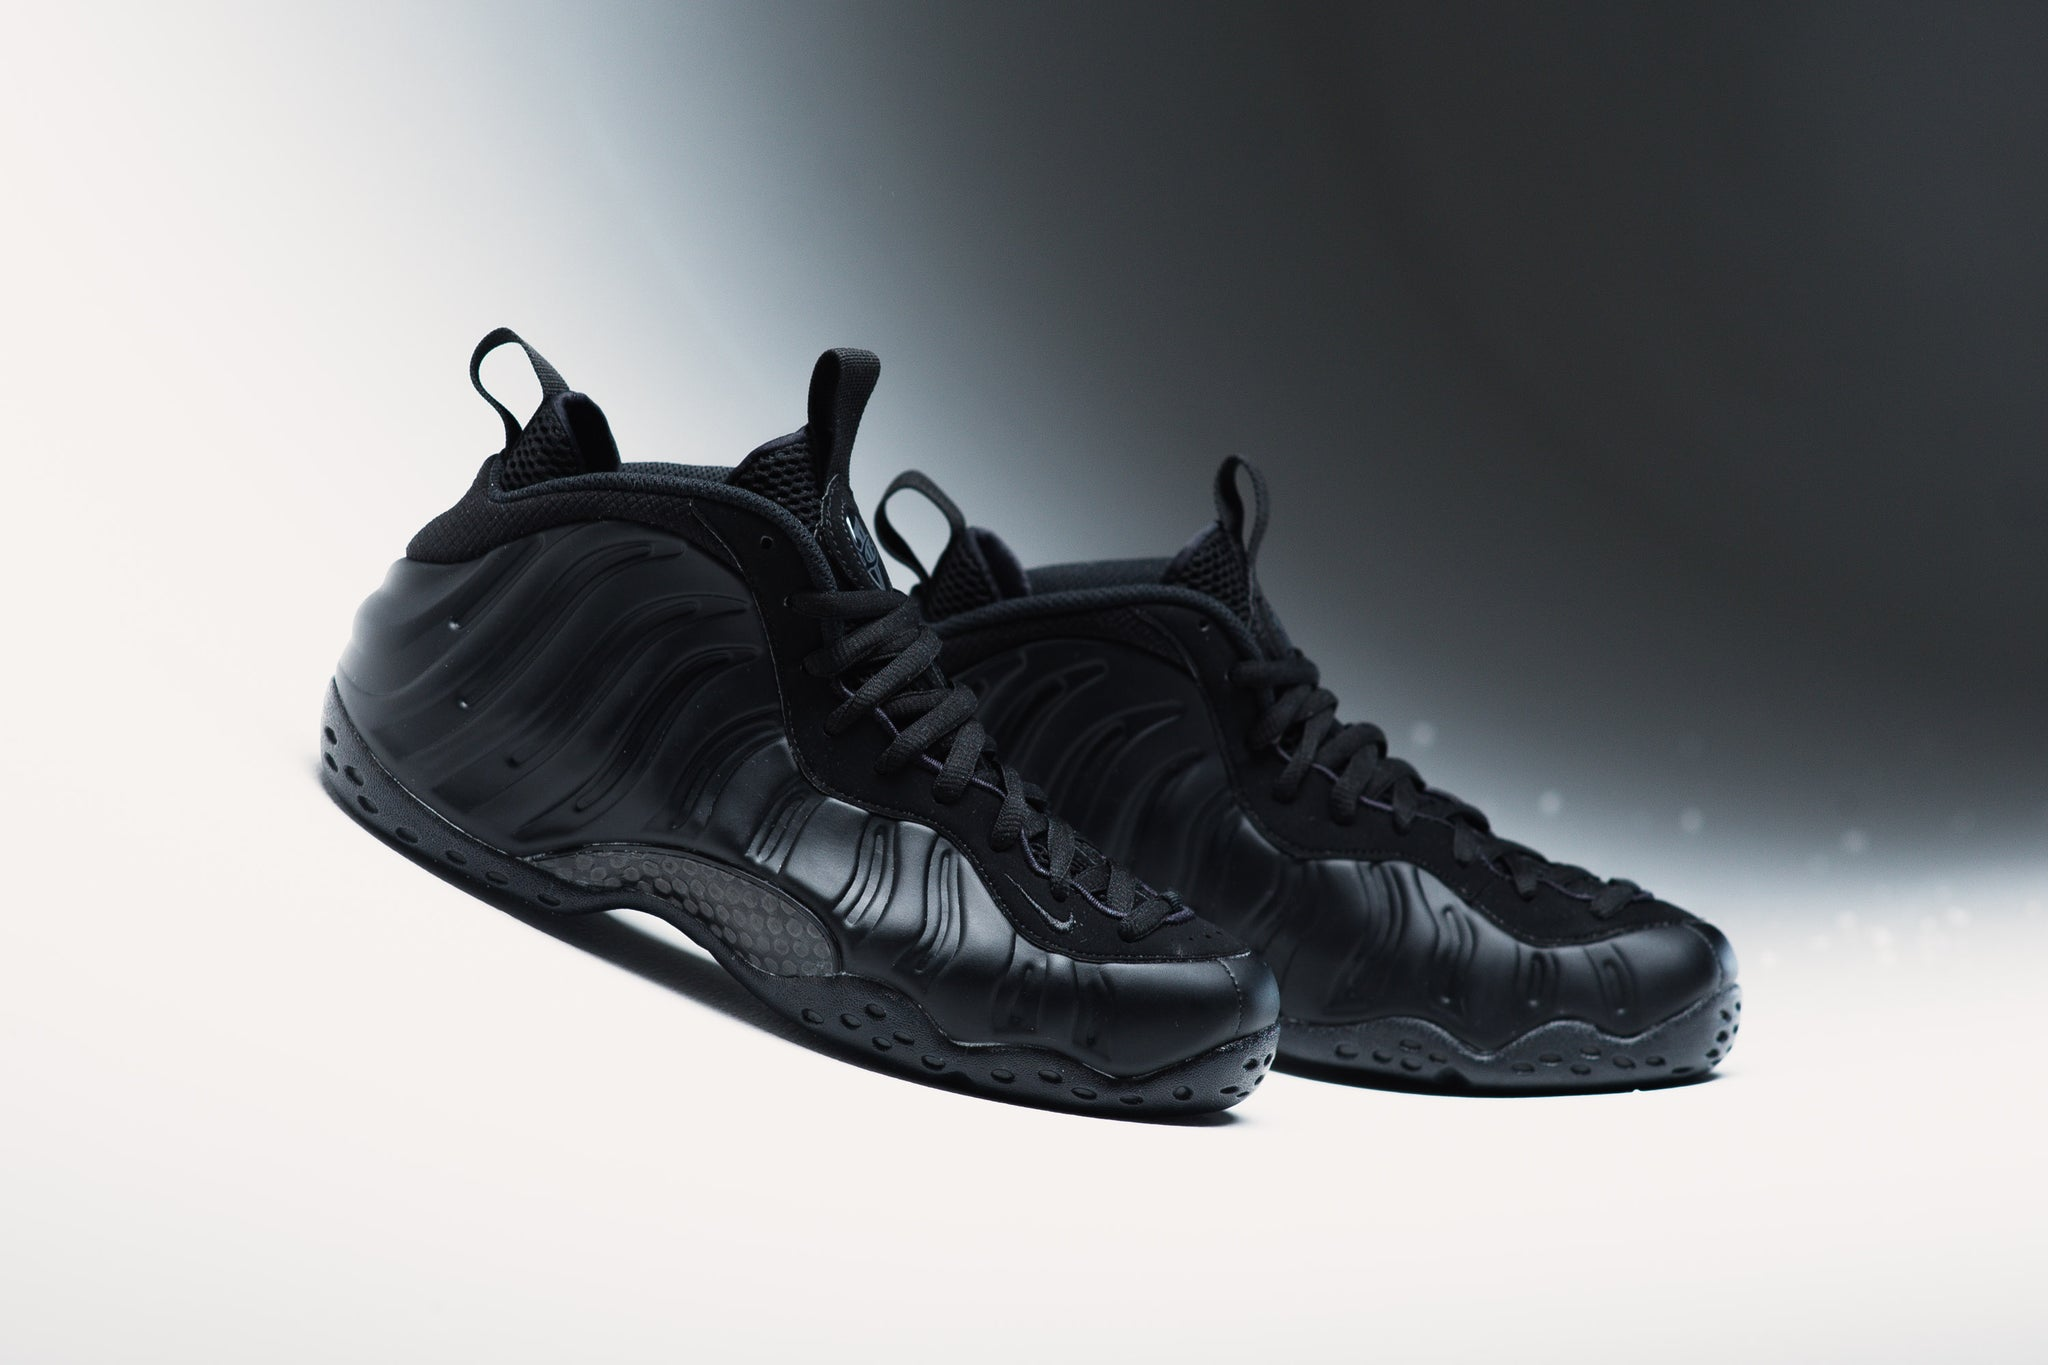 Nike Air Foamposite One Copper to Release in AprilXXL